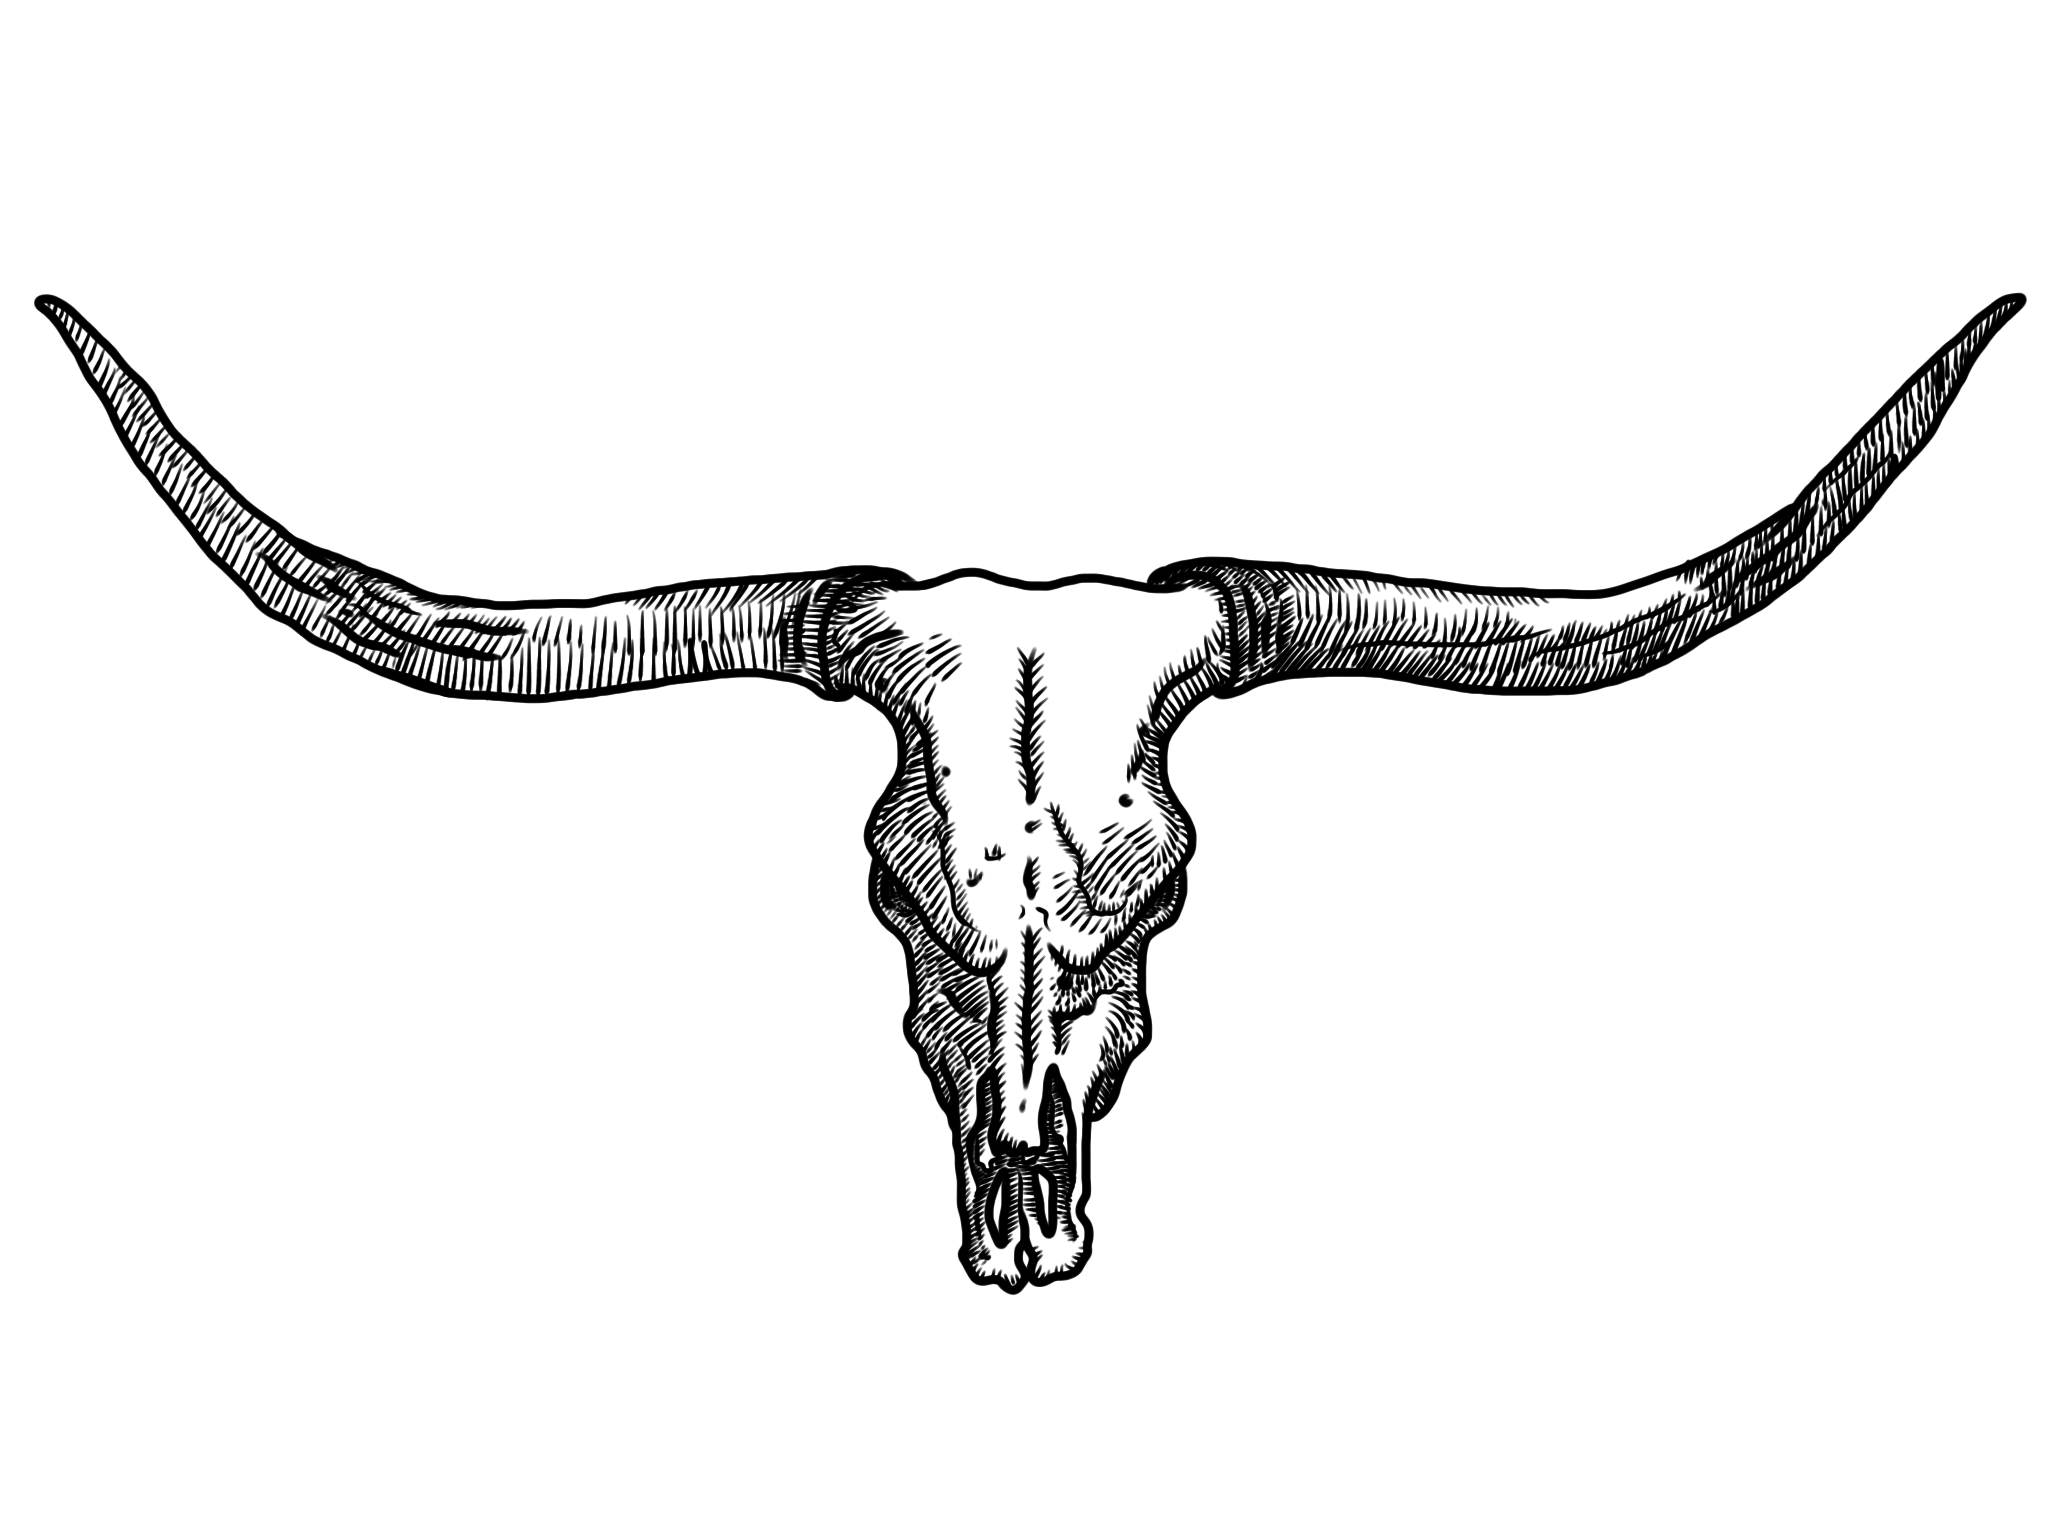 Longhorn steer head clipart banner black and white Free Longhorn Cattle Cliparts, Download Free Clip Art, Free ... banner black and white